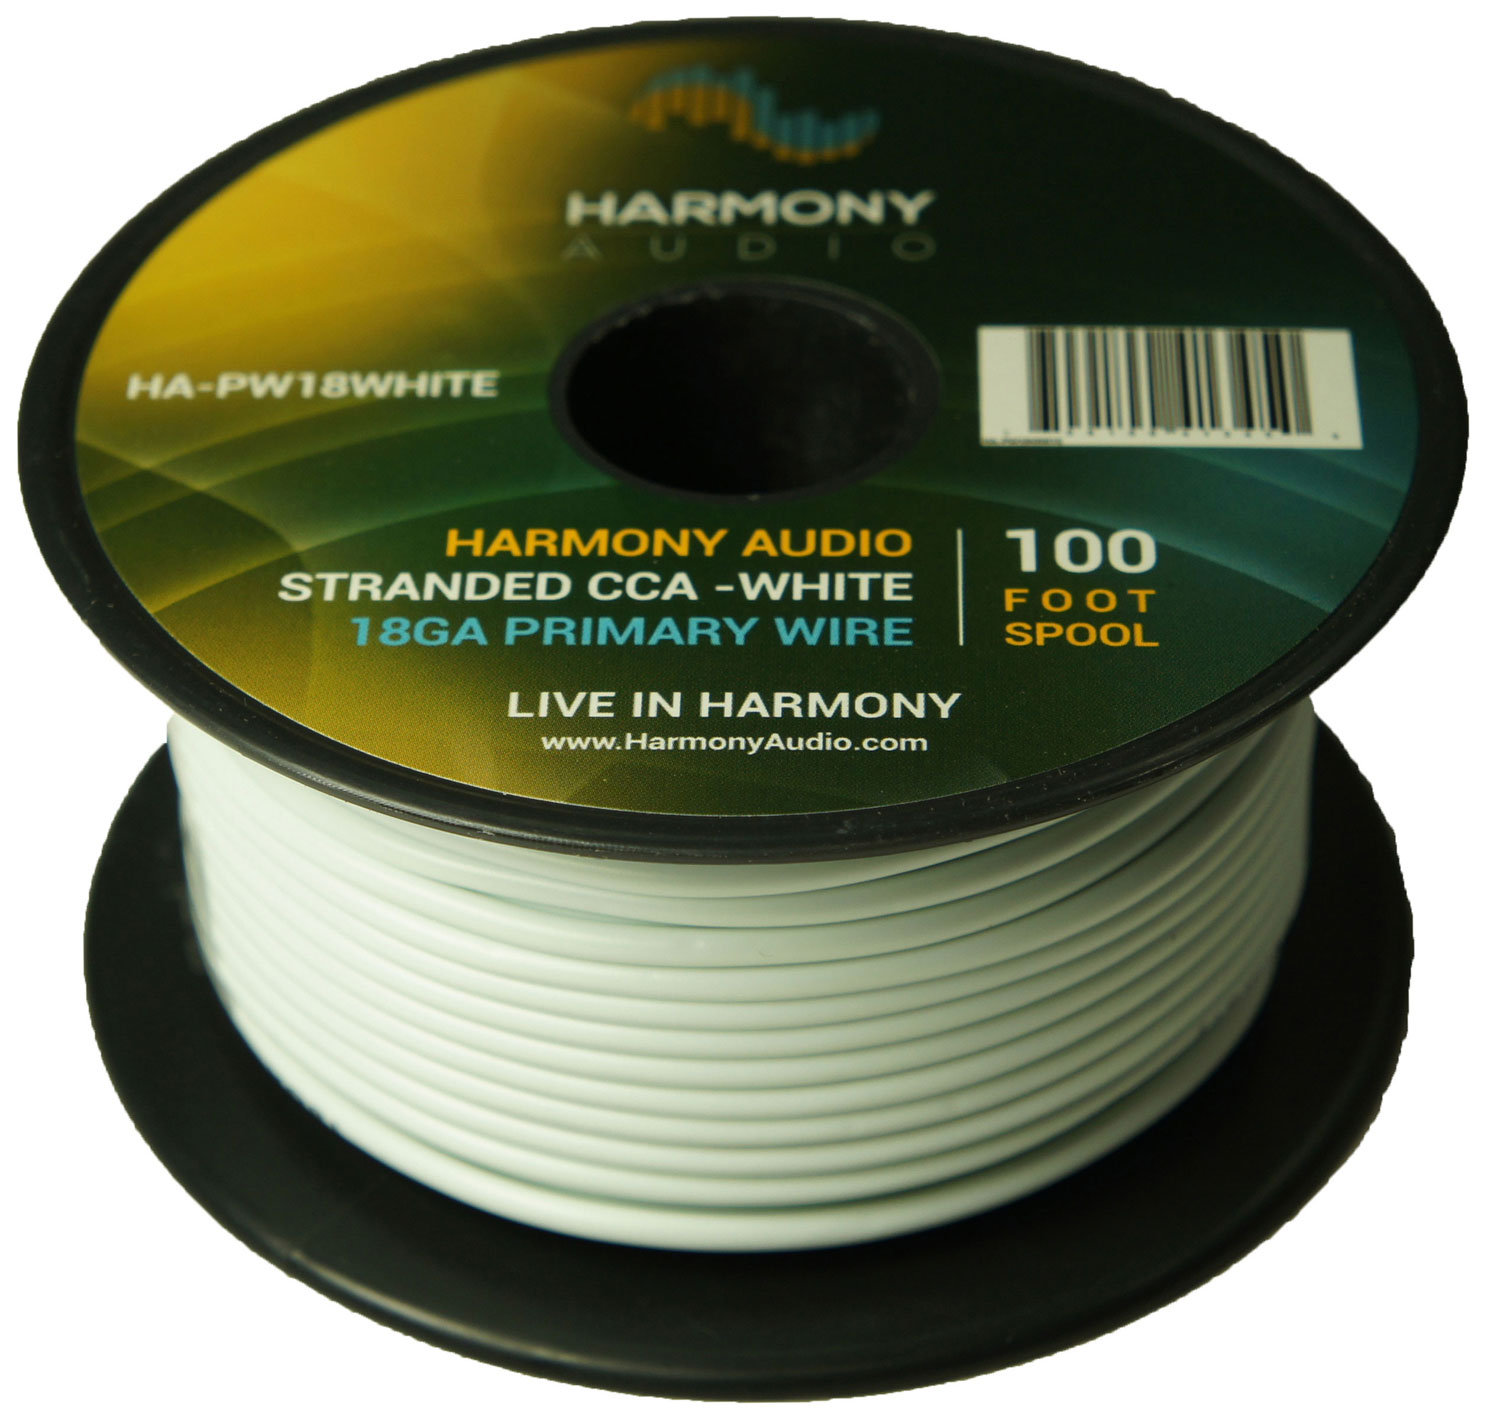 Harmony Audio HA-PW18WHITE Primary Single Conductor 18 Gauge White Power or Ground Wire Roll 100 Feet Cable for Car Audio / Trailer / Model Train / Remote